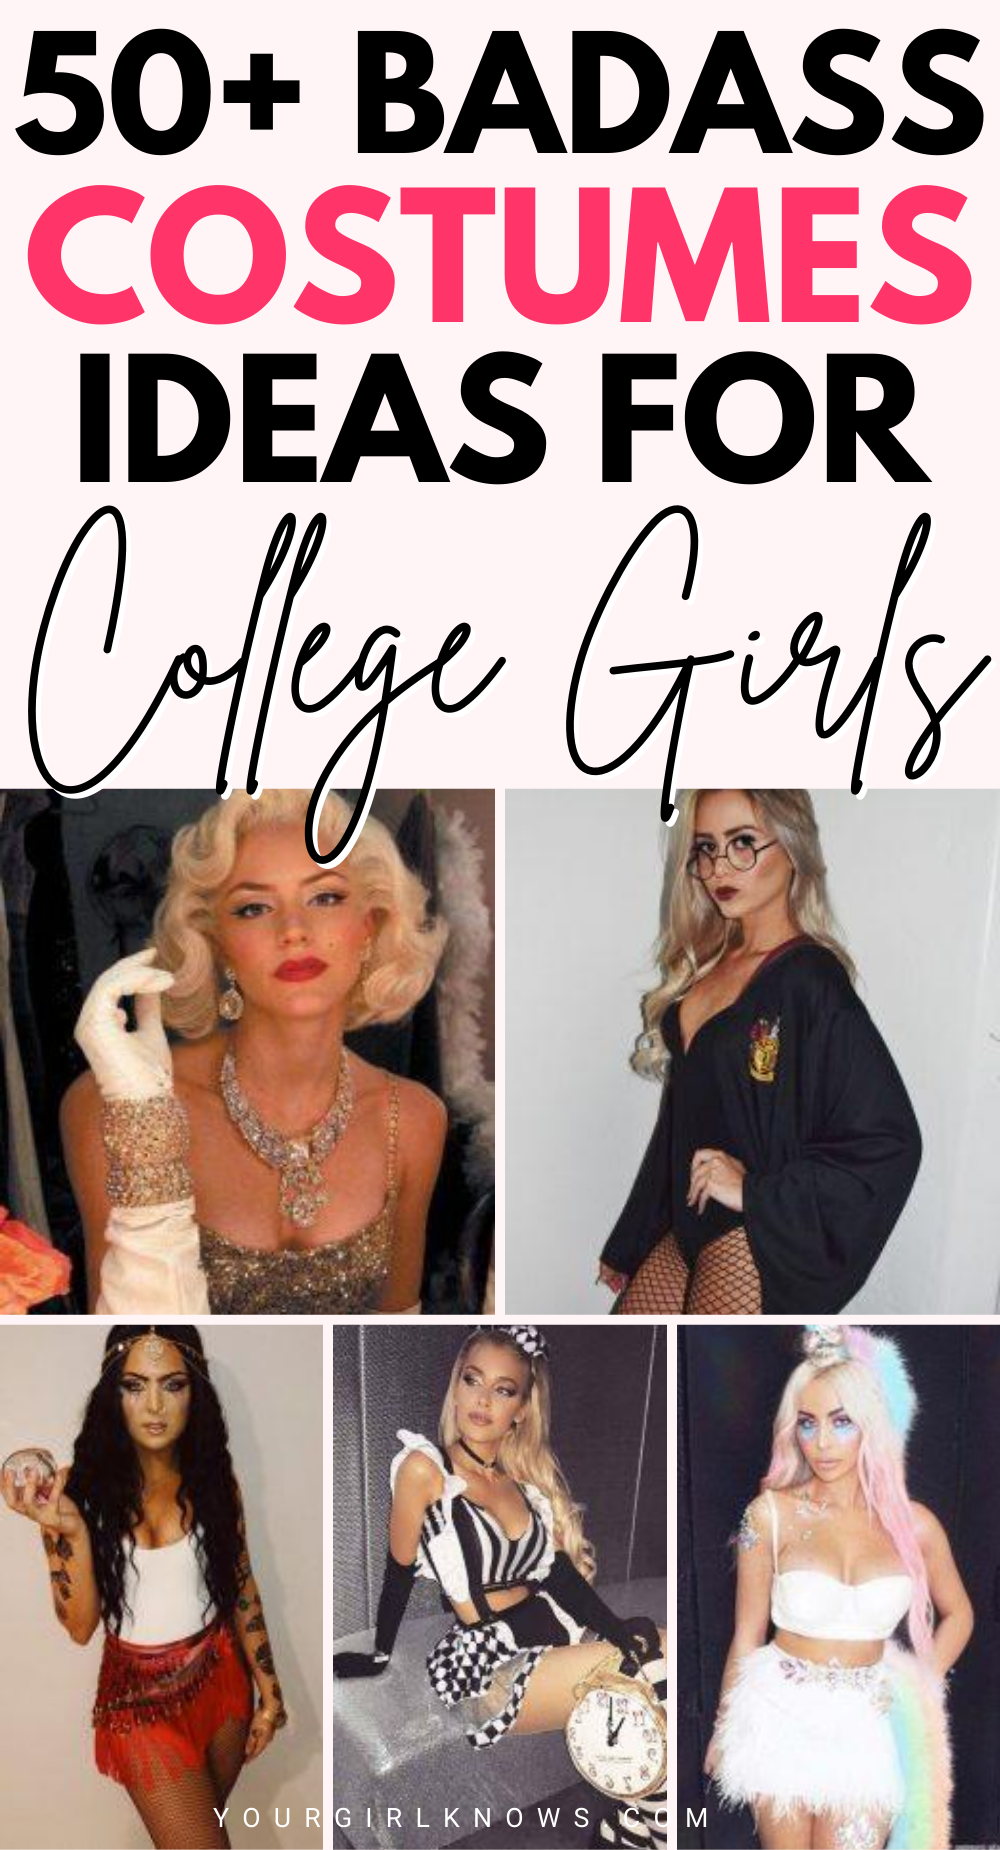 50+ UNIQUE HALLOWEEN COSTUMEs COLLEGE FOR GIRLS TO